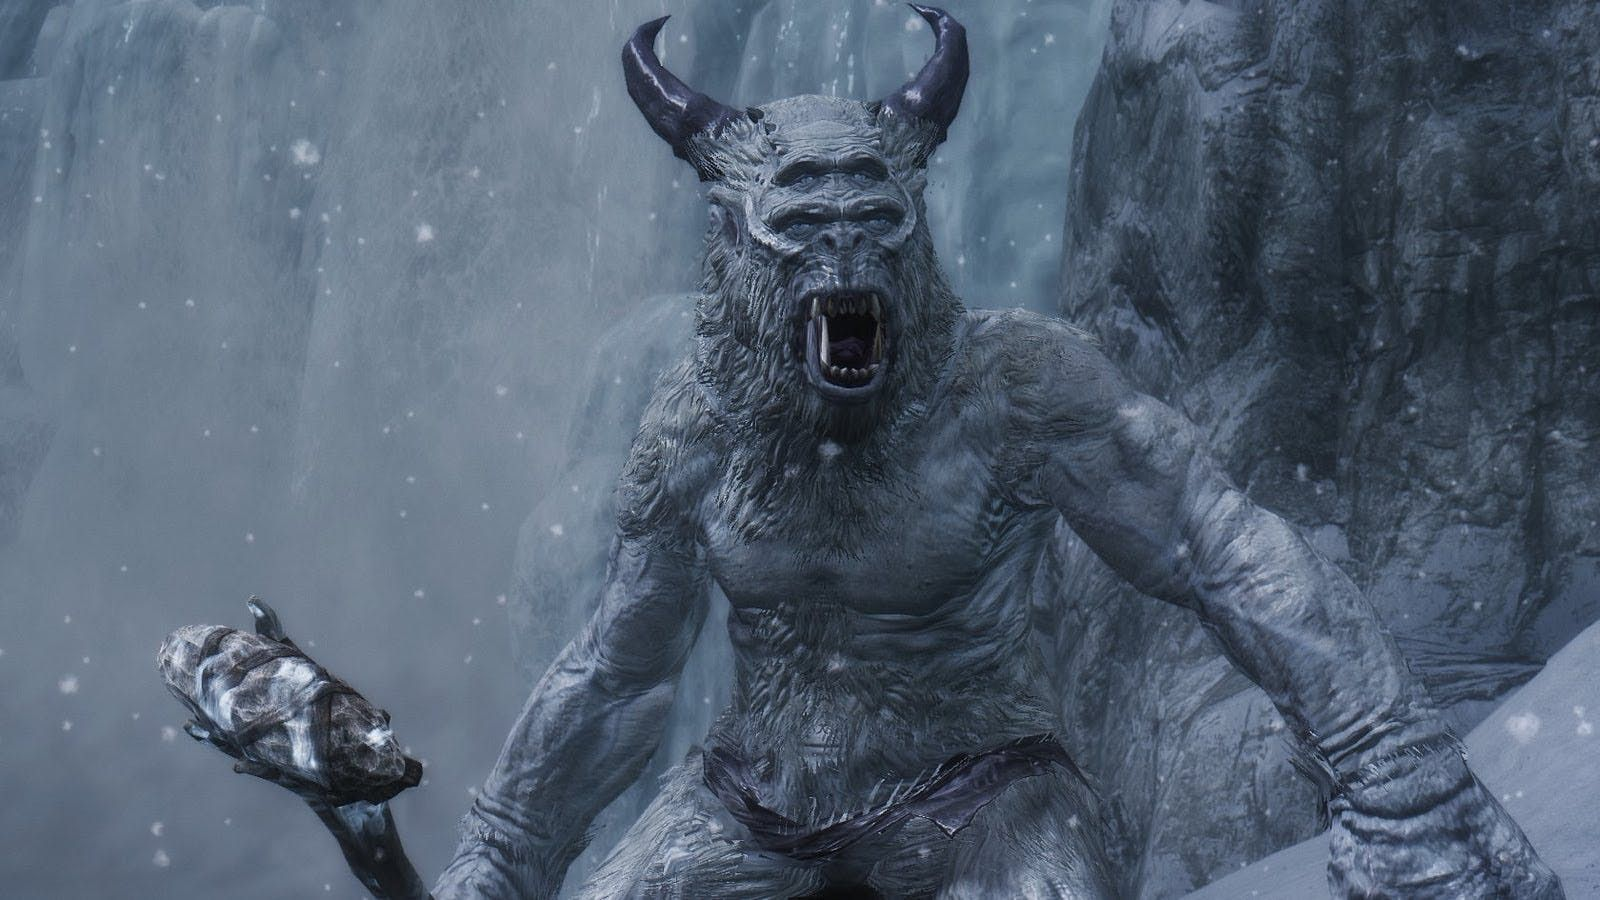 TV and Movie News Skyrim: The 10 Most Powerful (And 10